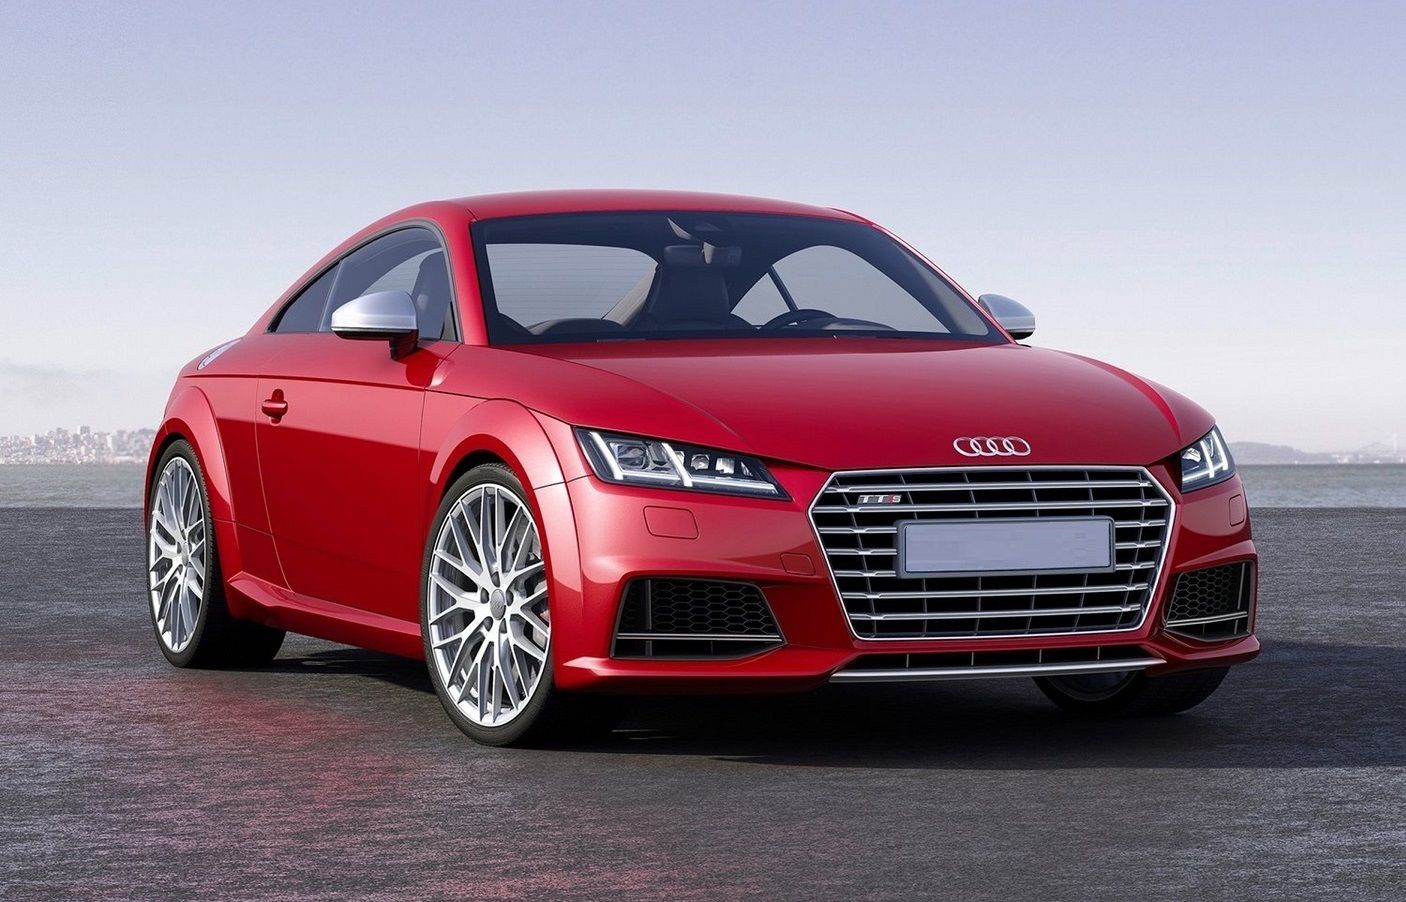 Audi Tts Coupe 2 Door Sports Cars For Get Great Prices On Luxury